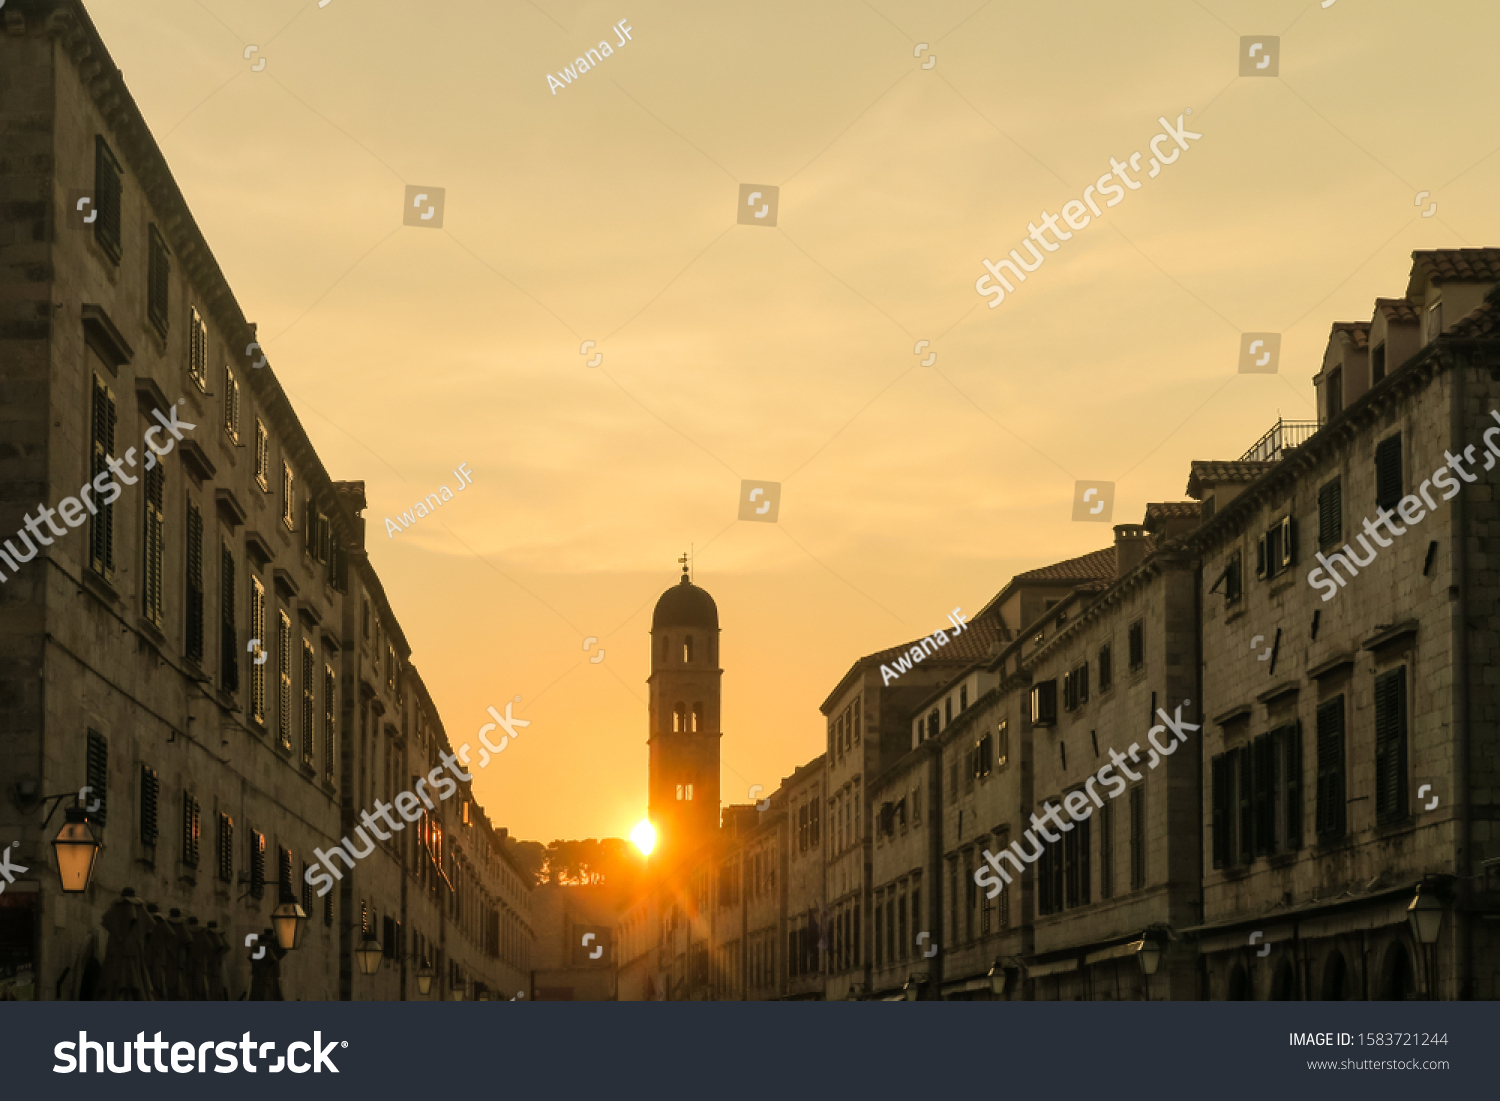 stock-photo-historical-stone-houses-of-t